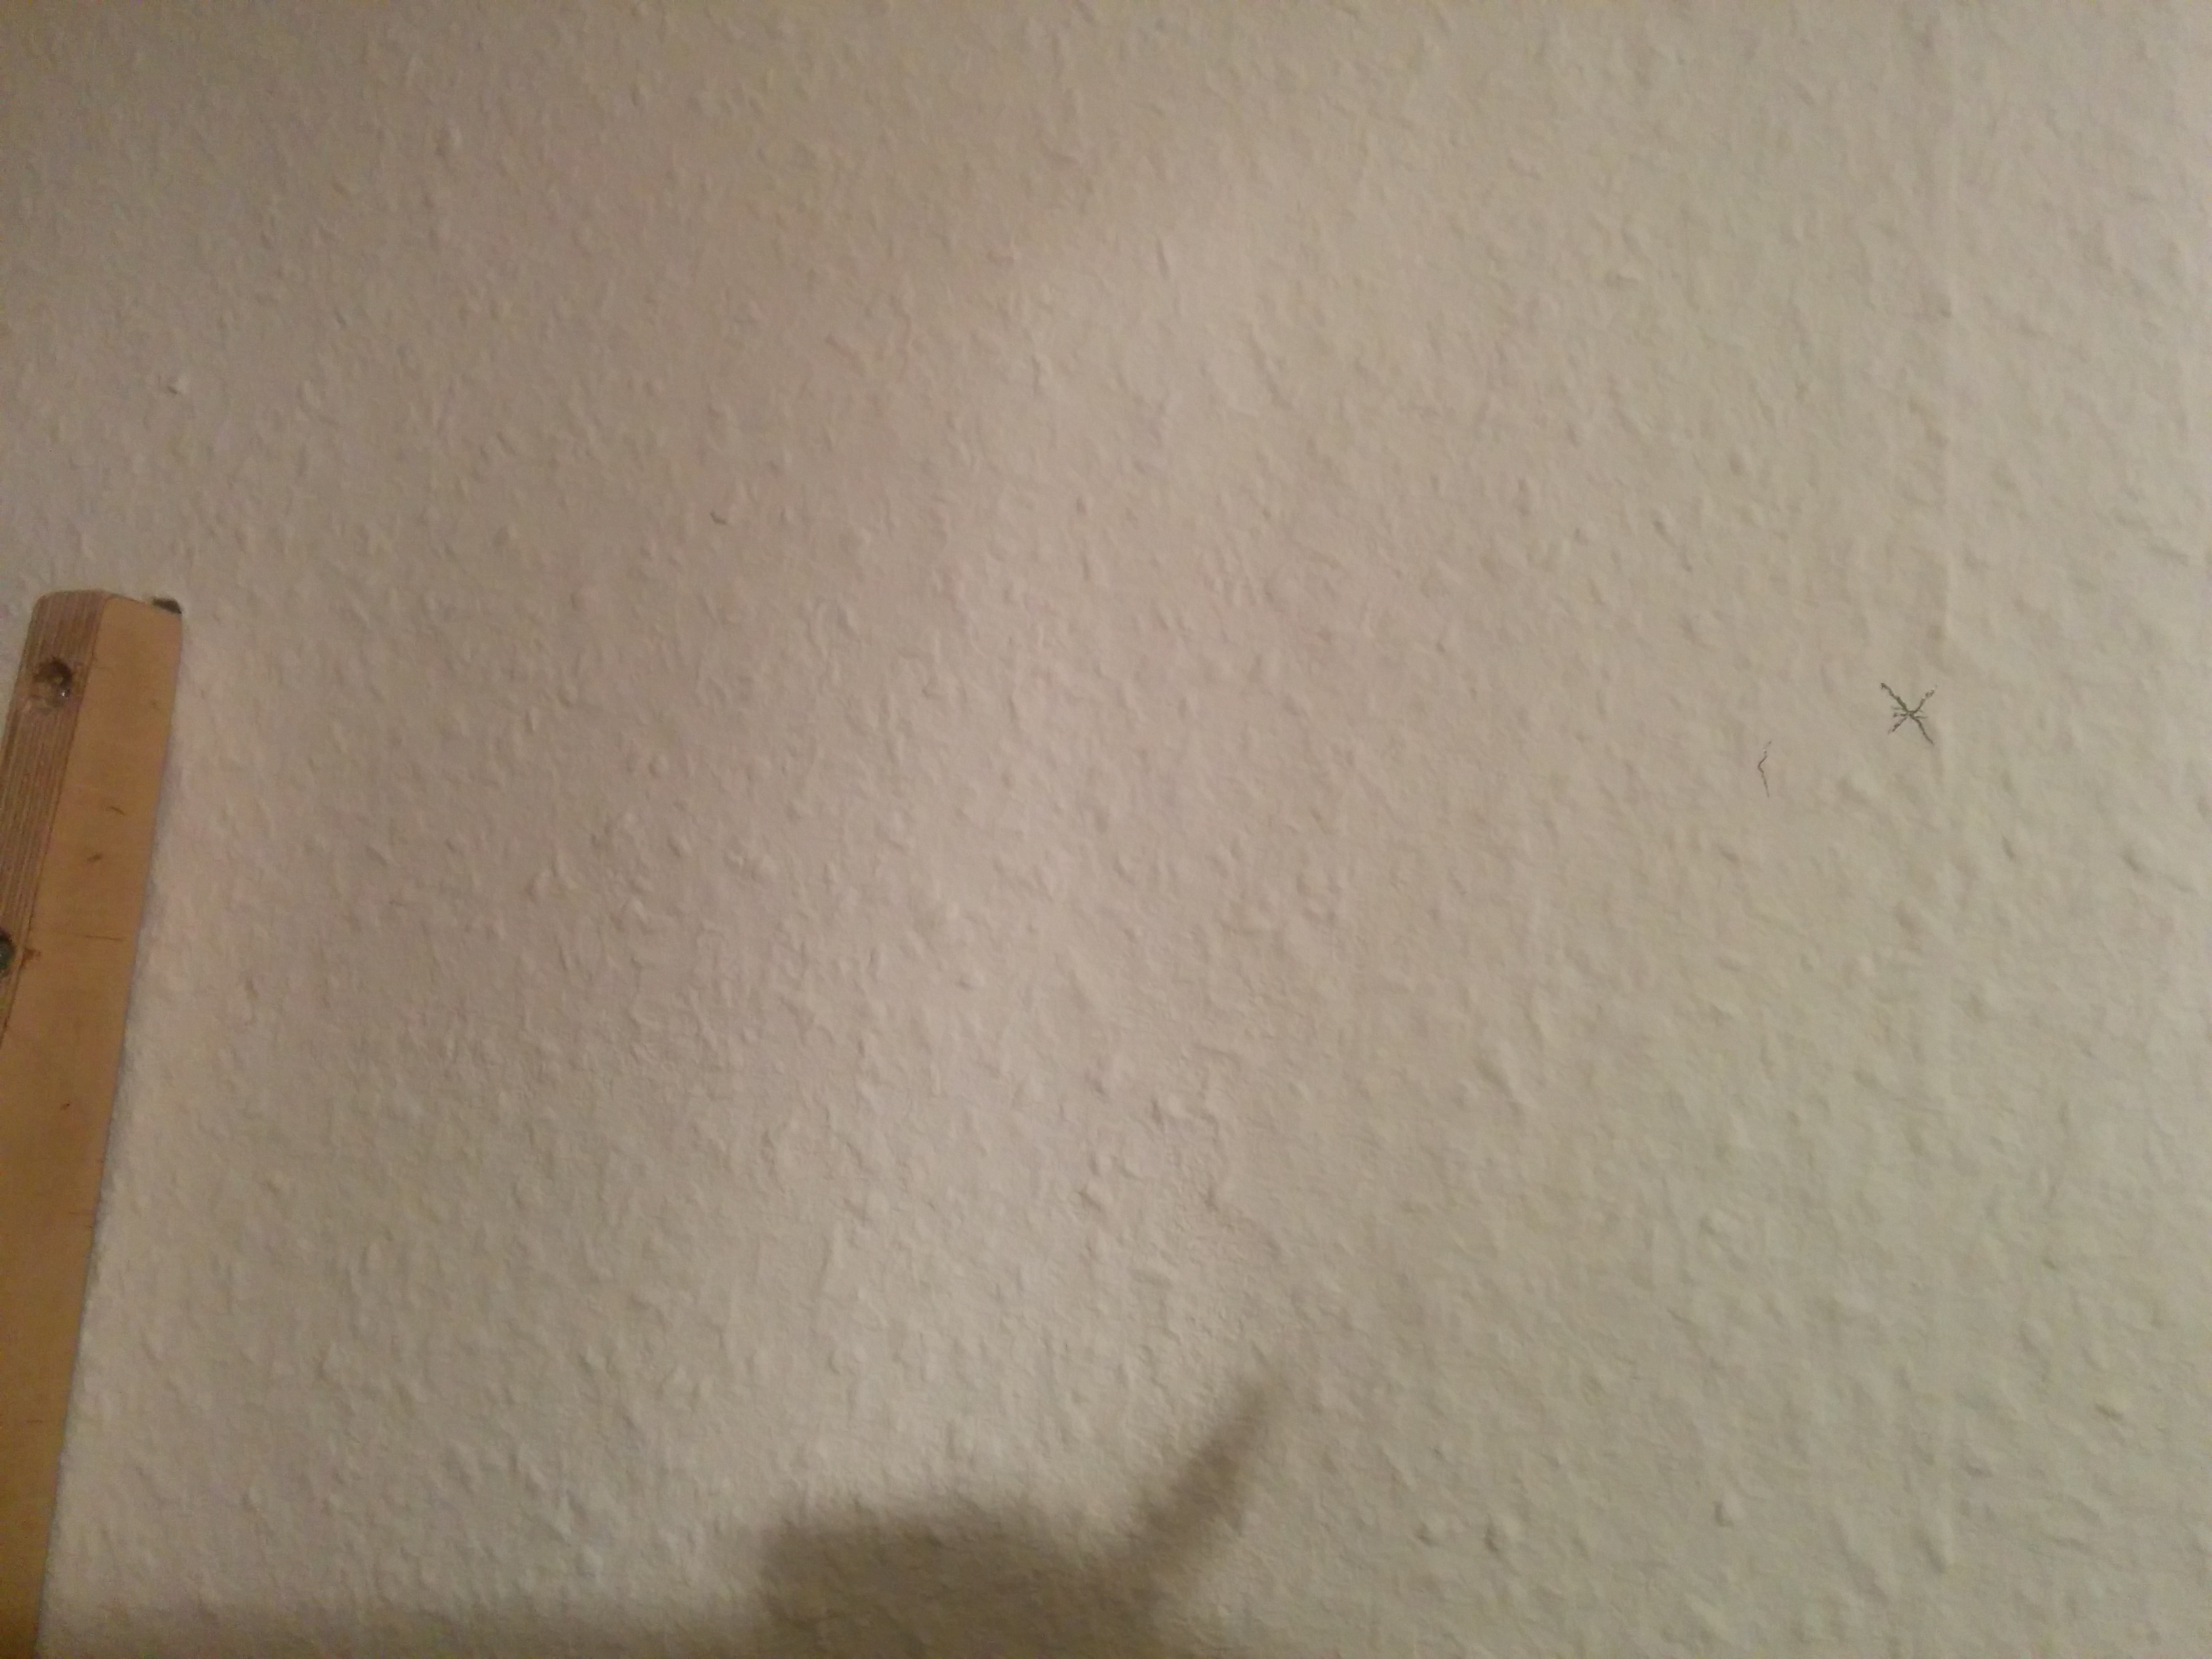 Picture of Mount to the Wall